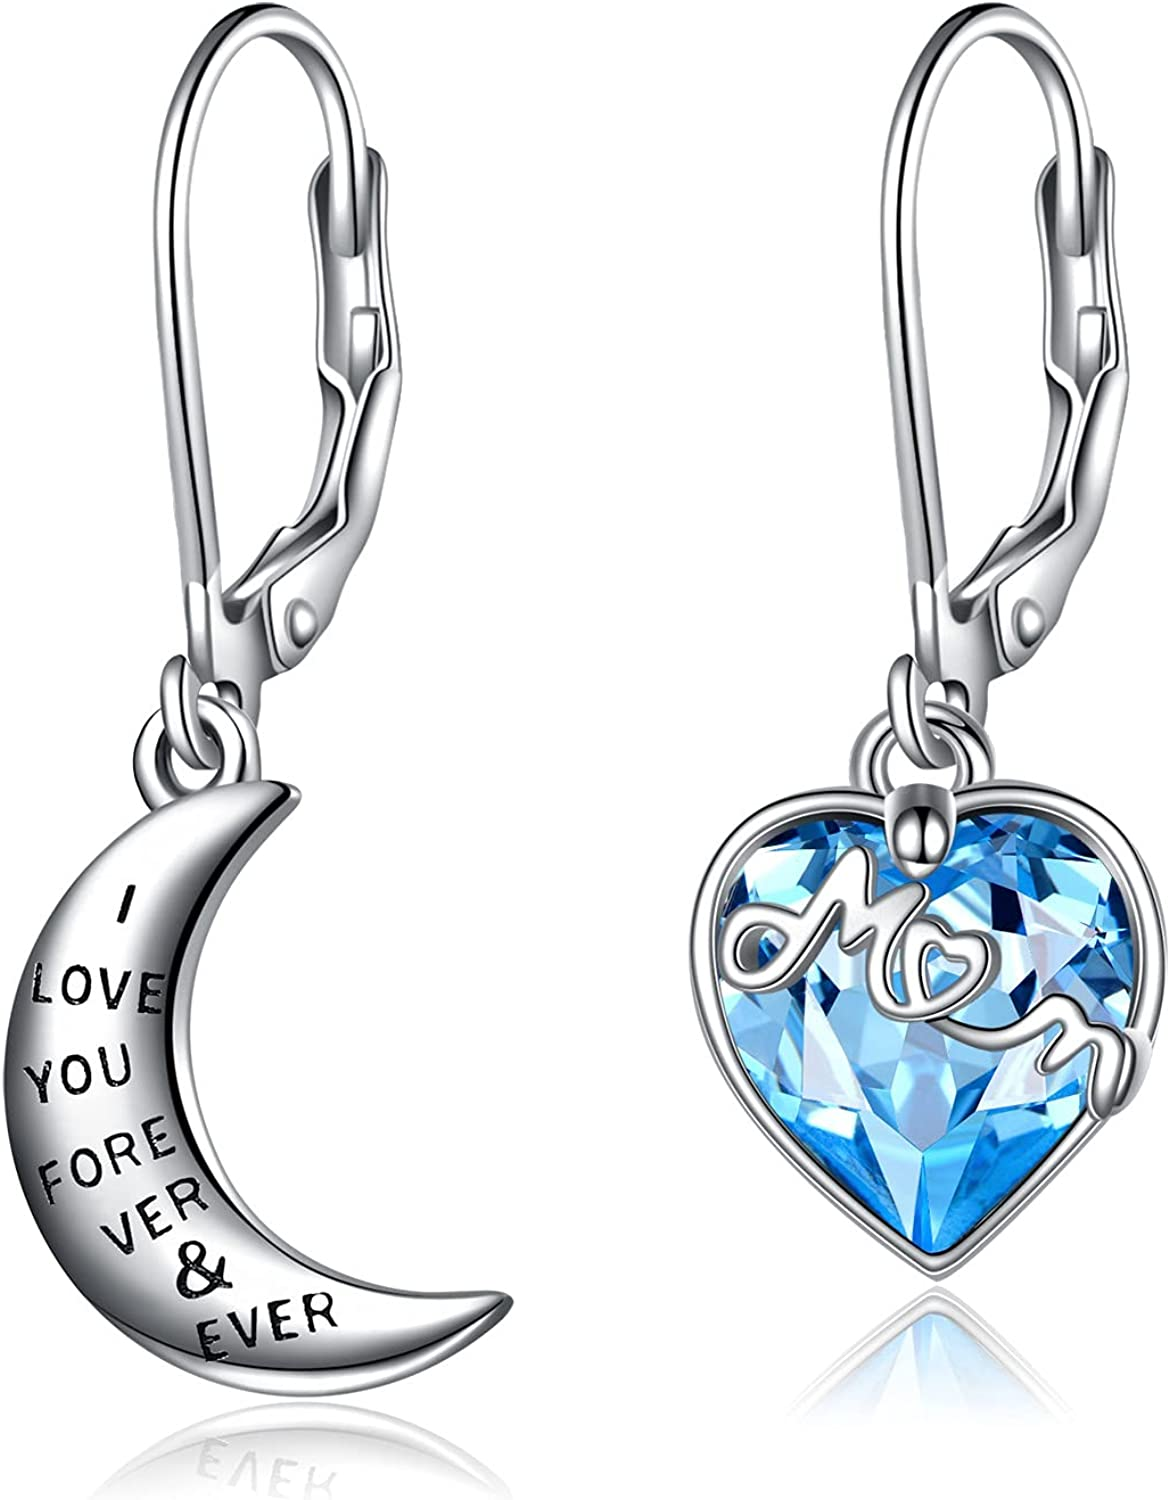 YAFEINI Earrings for Mom I Love You Forever and Ever Cresent Crystal Heart Earrings Gifts to Mom from Daughter